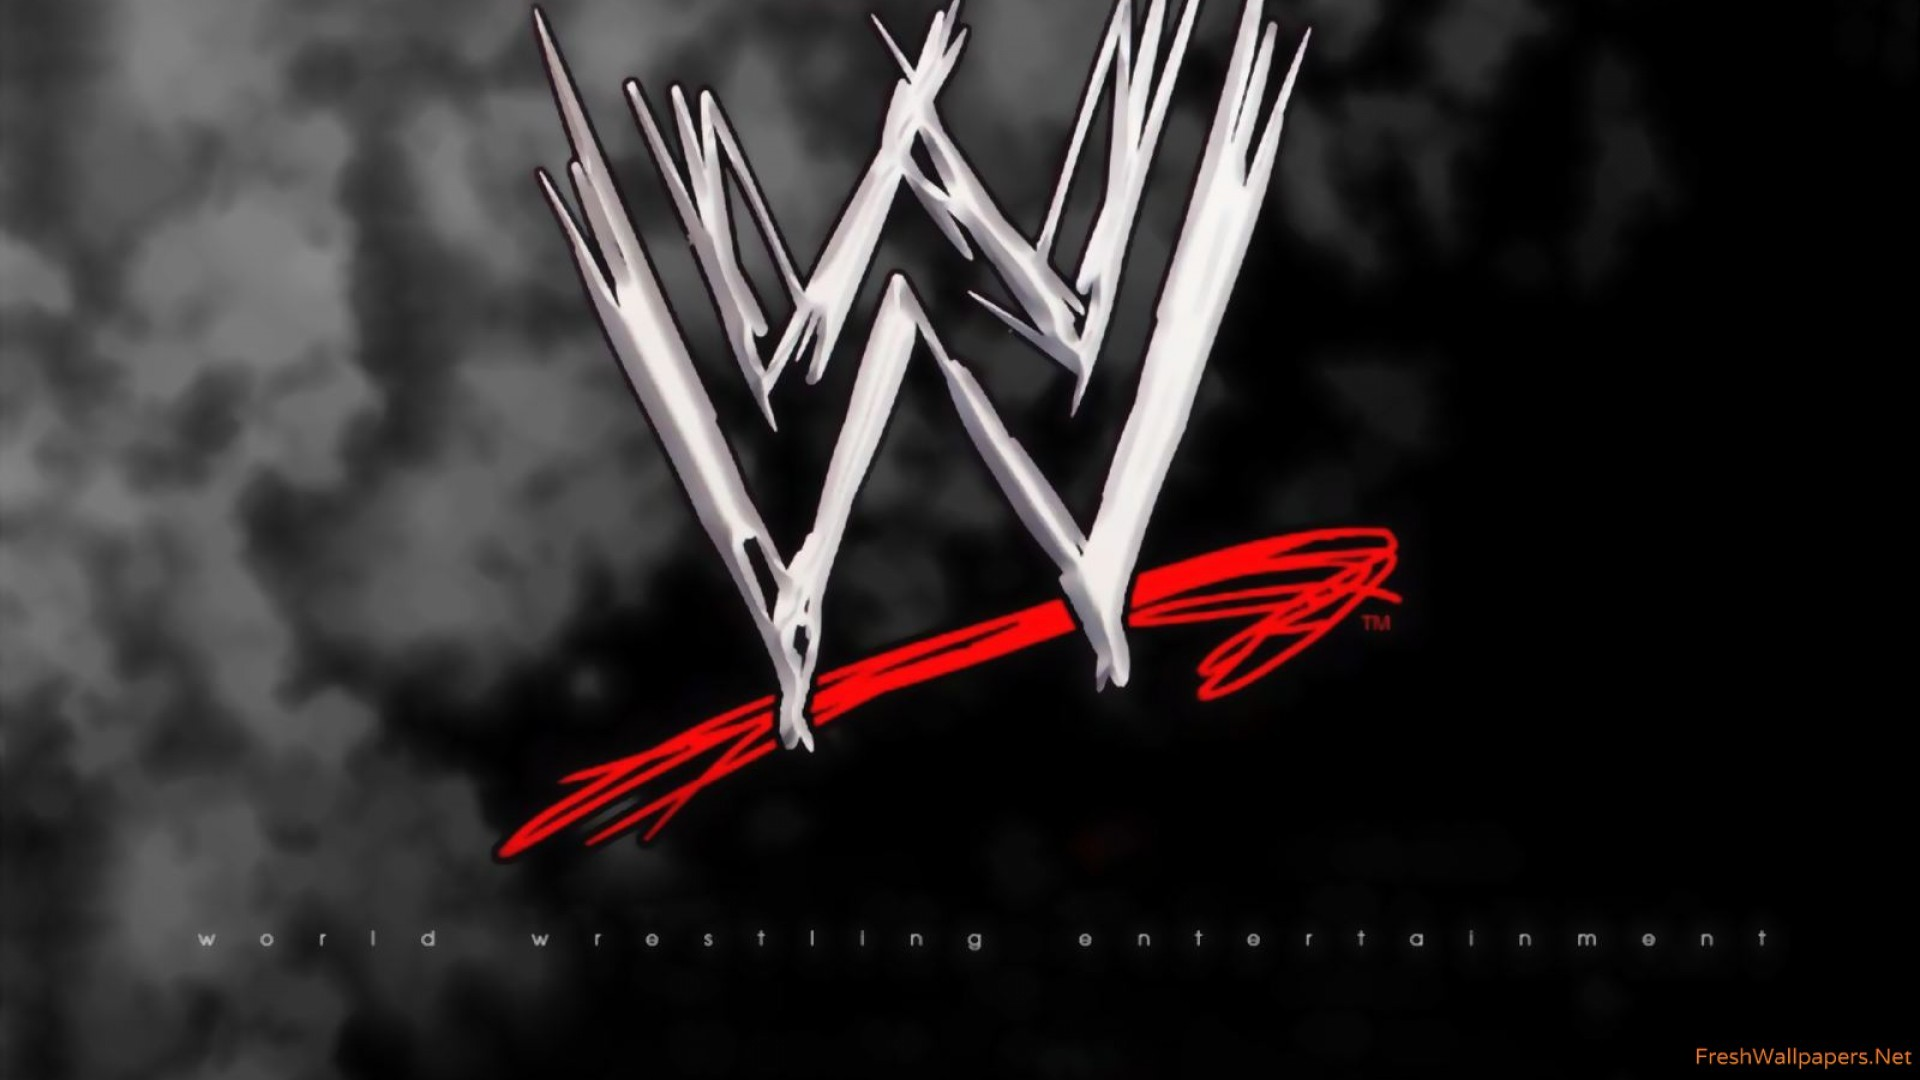 Res: 1920x1080, wwe-logo Wallpaper: